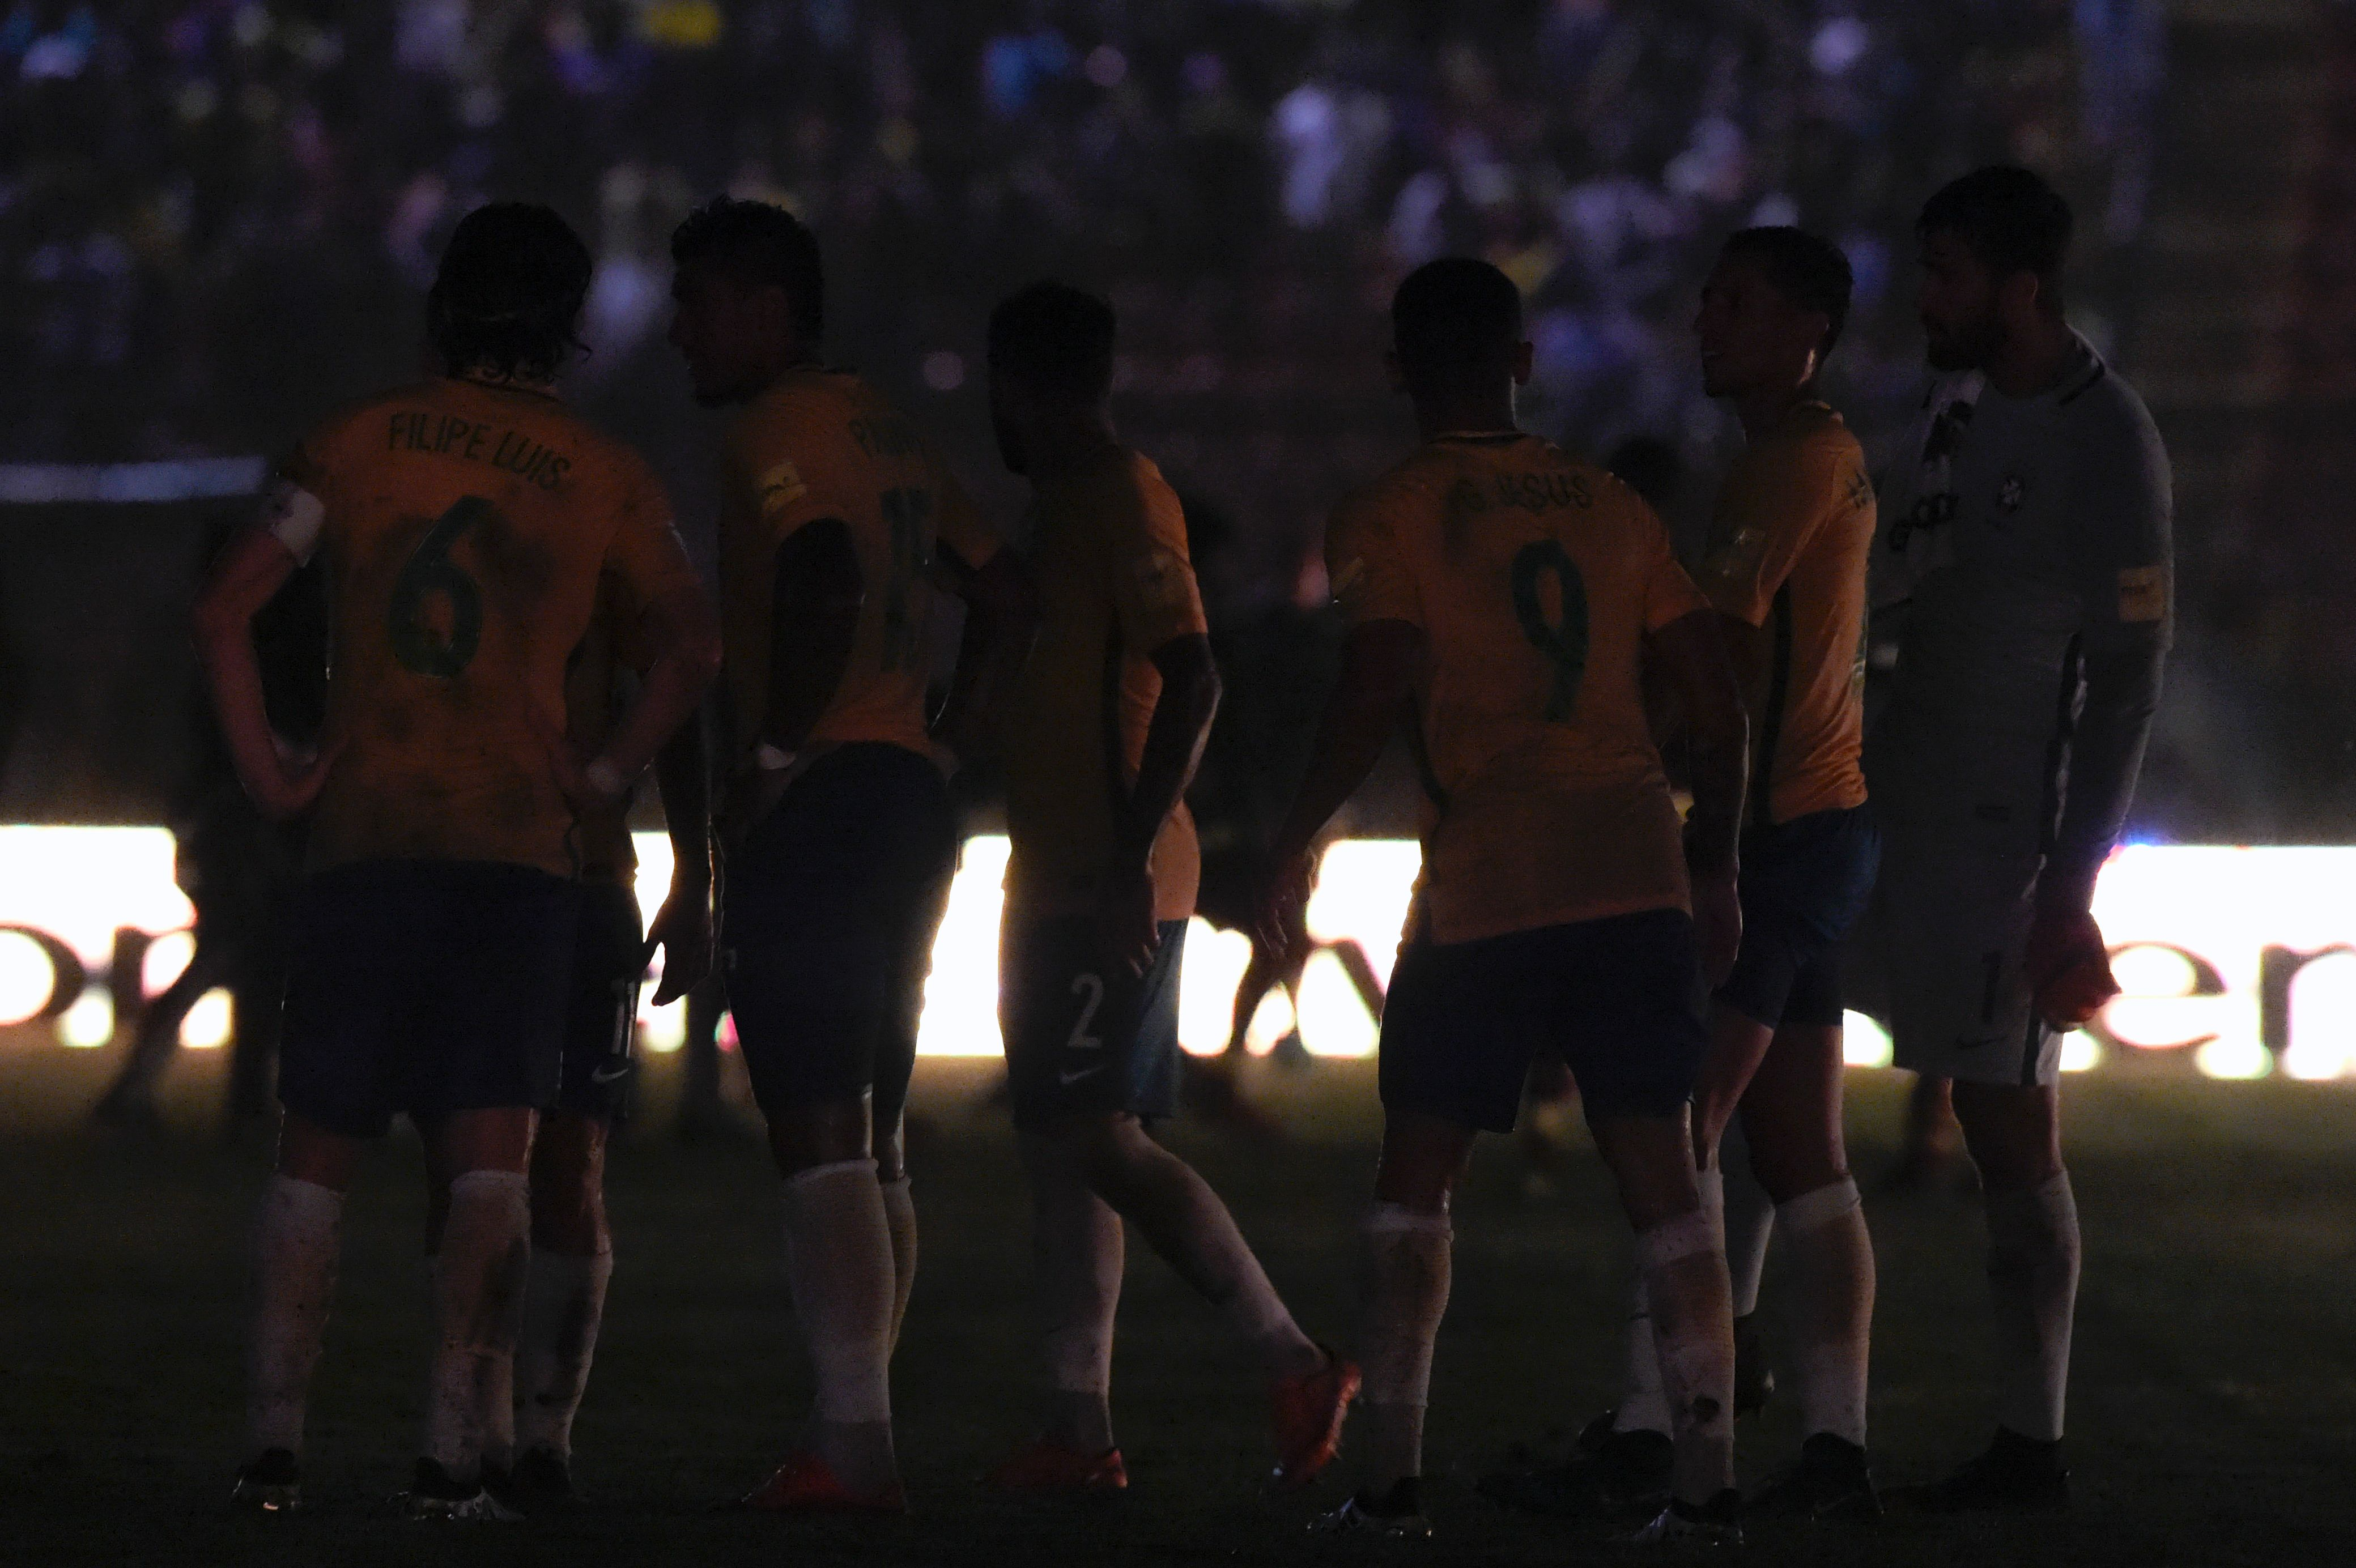 Brazilian players are seen on the field as a blackout occured during the Russia 2018 FIFA World Cup qualifier football match against Venezuela, in Merida, Venezuela, on October 11, 2016.